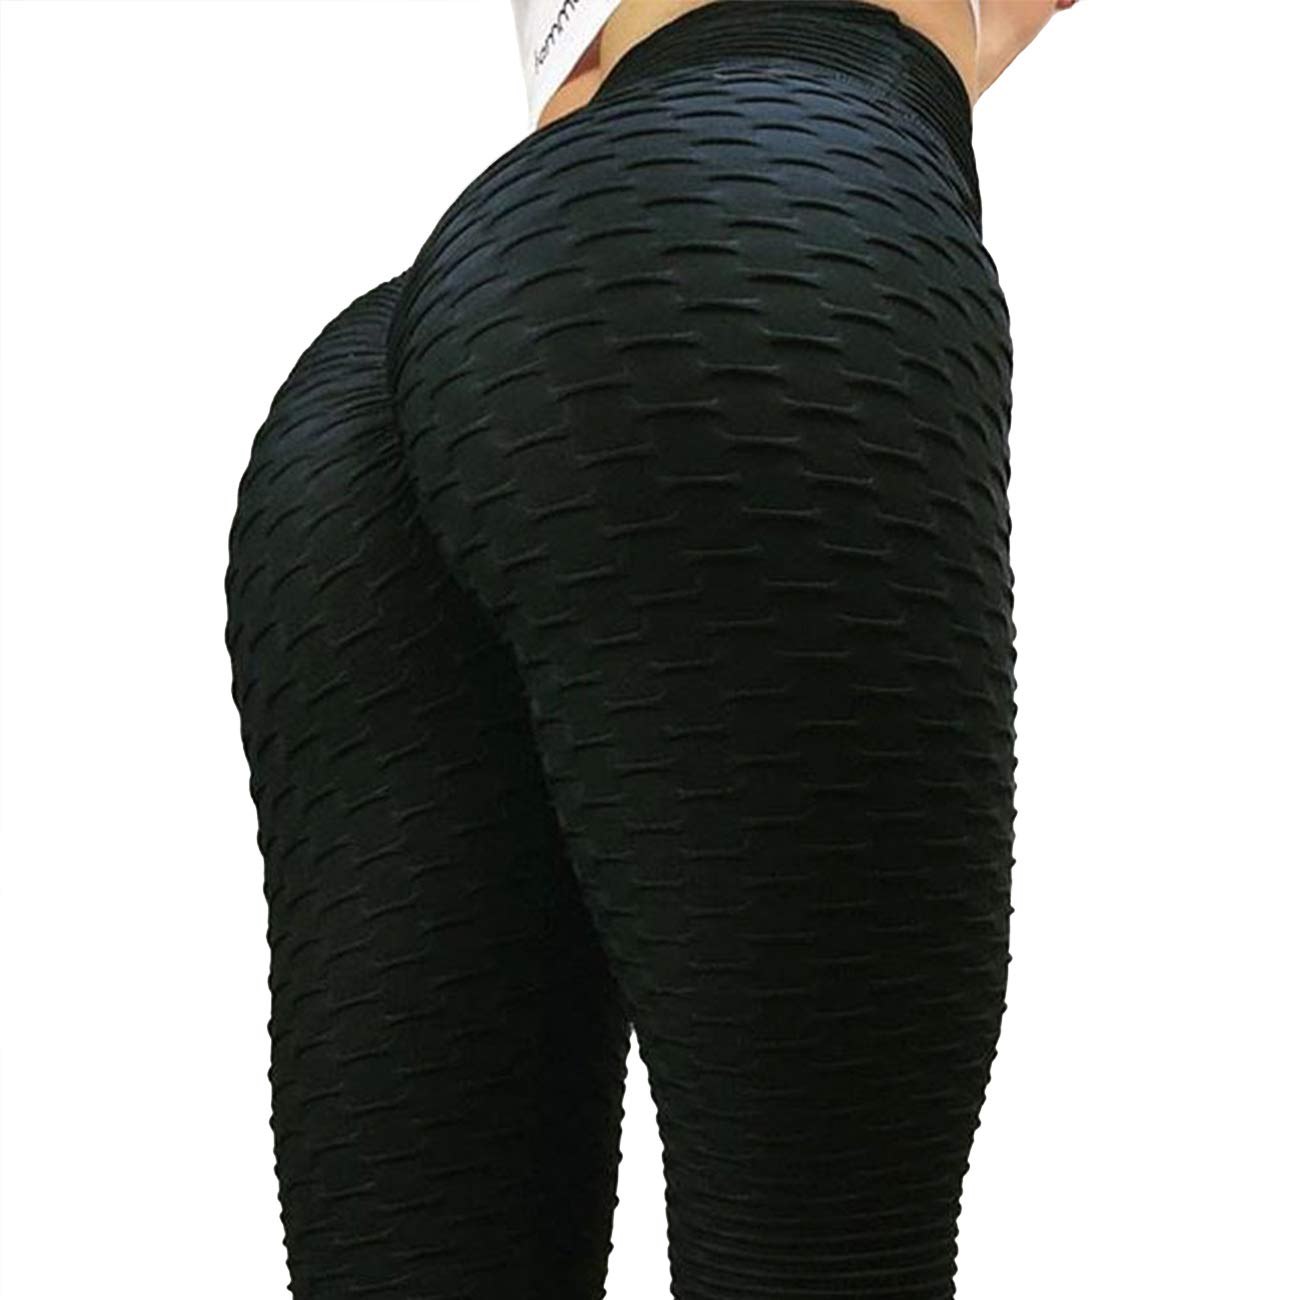 c9844e770165b FITTOO Women Sexy High Waist Butt Scrunch Push Up Leggings Stretch Gym  Workout Yoga Pants: Amazon.co.uk: Sports & Outdoors